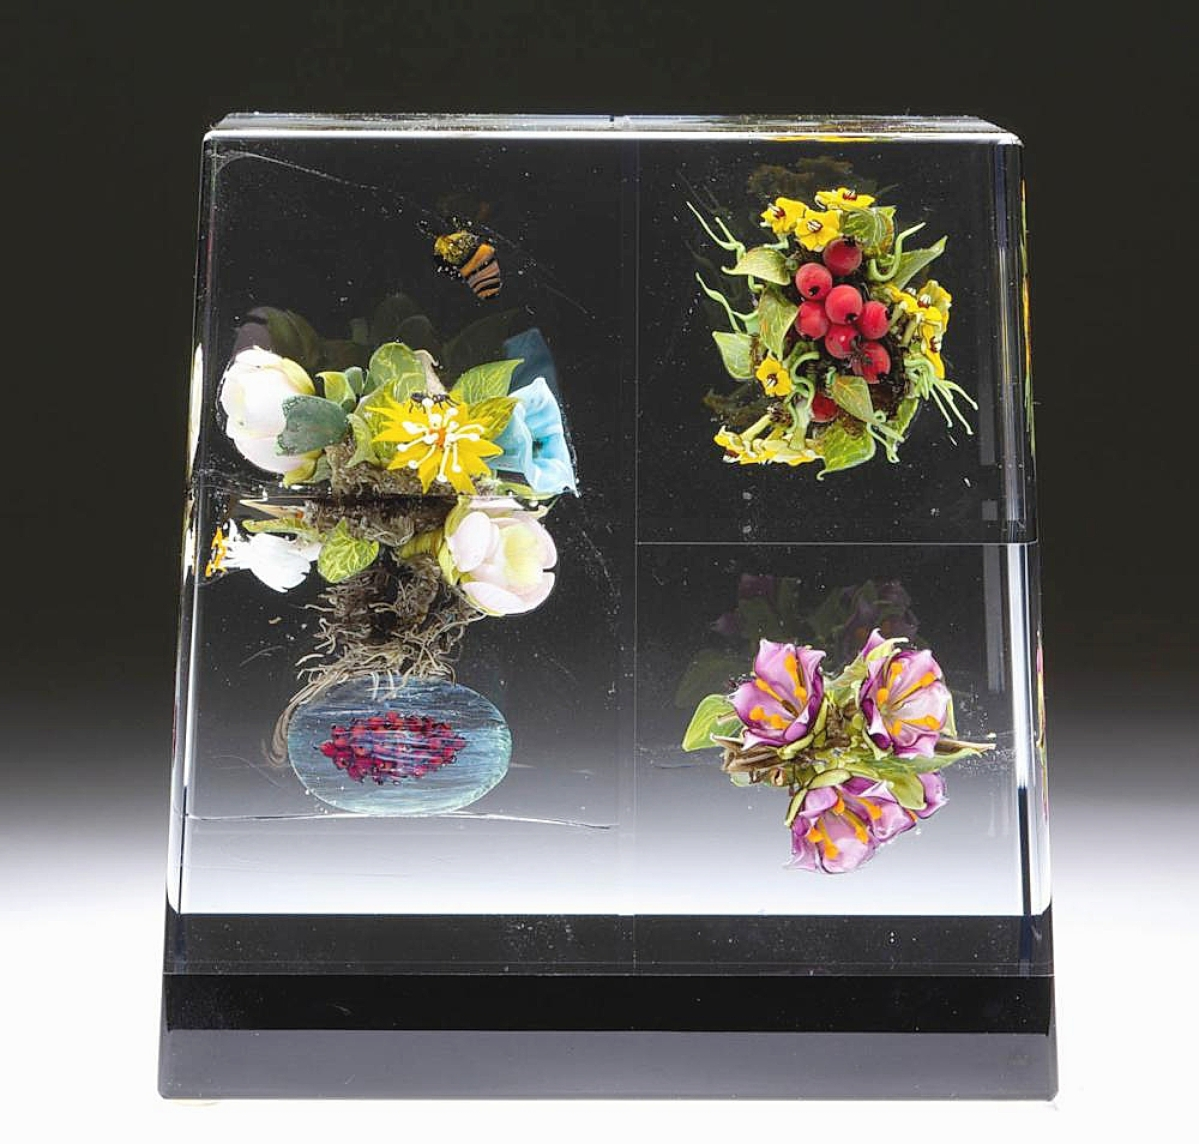 Topping works by a contemporary paperweight maker was Paul Stankard's botanical assemblage lampwork studio art glass paperweight sculpture featuring encased blocks of blossoms. It achieved $9,360 ($6/8,000).